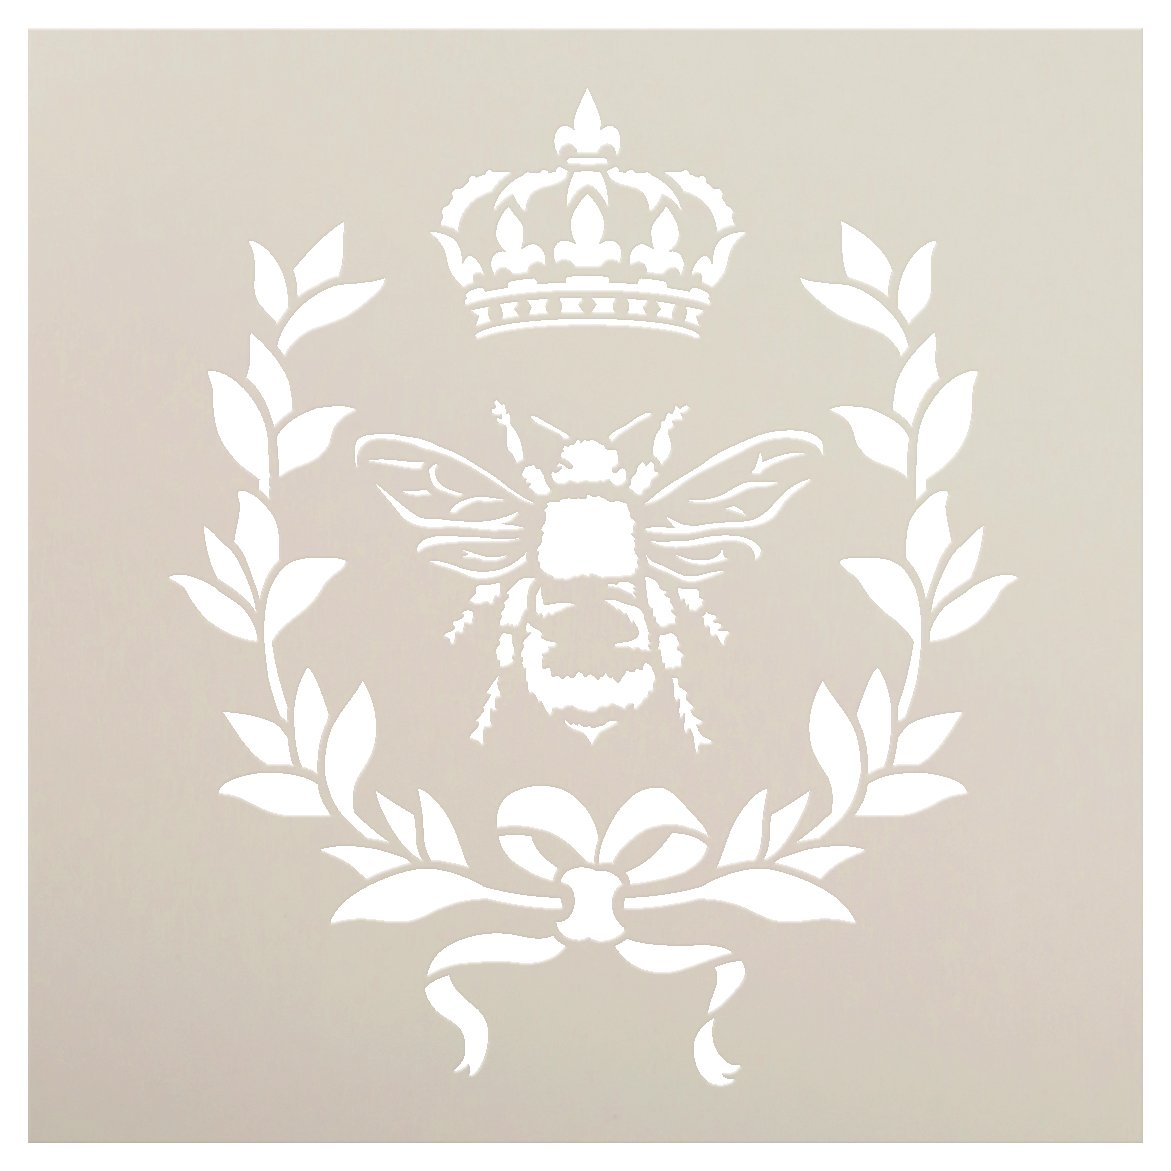 French Bee Stencil by StudioR12   Crown, Laurel Wreath, Bee, French Country - Use with Chalky Paint for Furniture, Farmhouse & Home Wall Decor   STCL917_2   SELECT SIZE